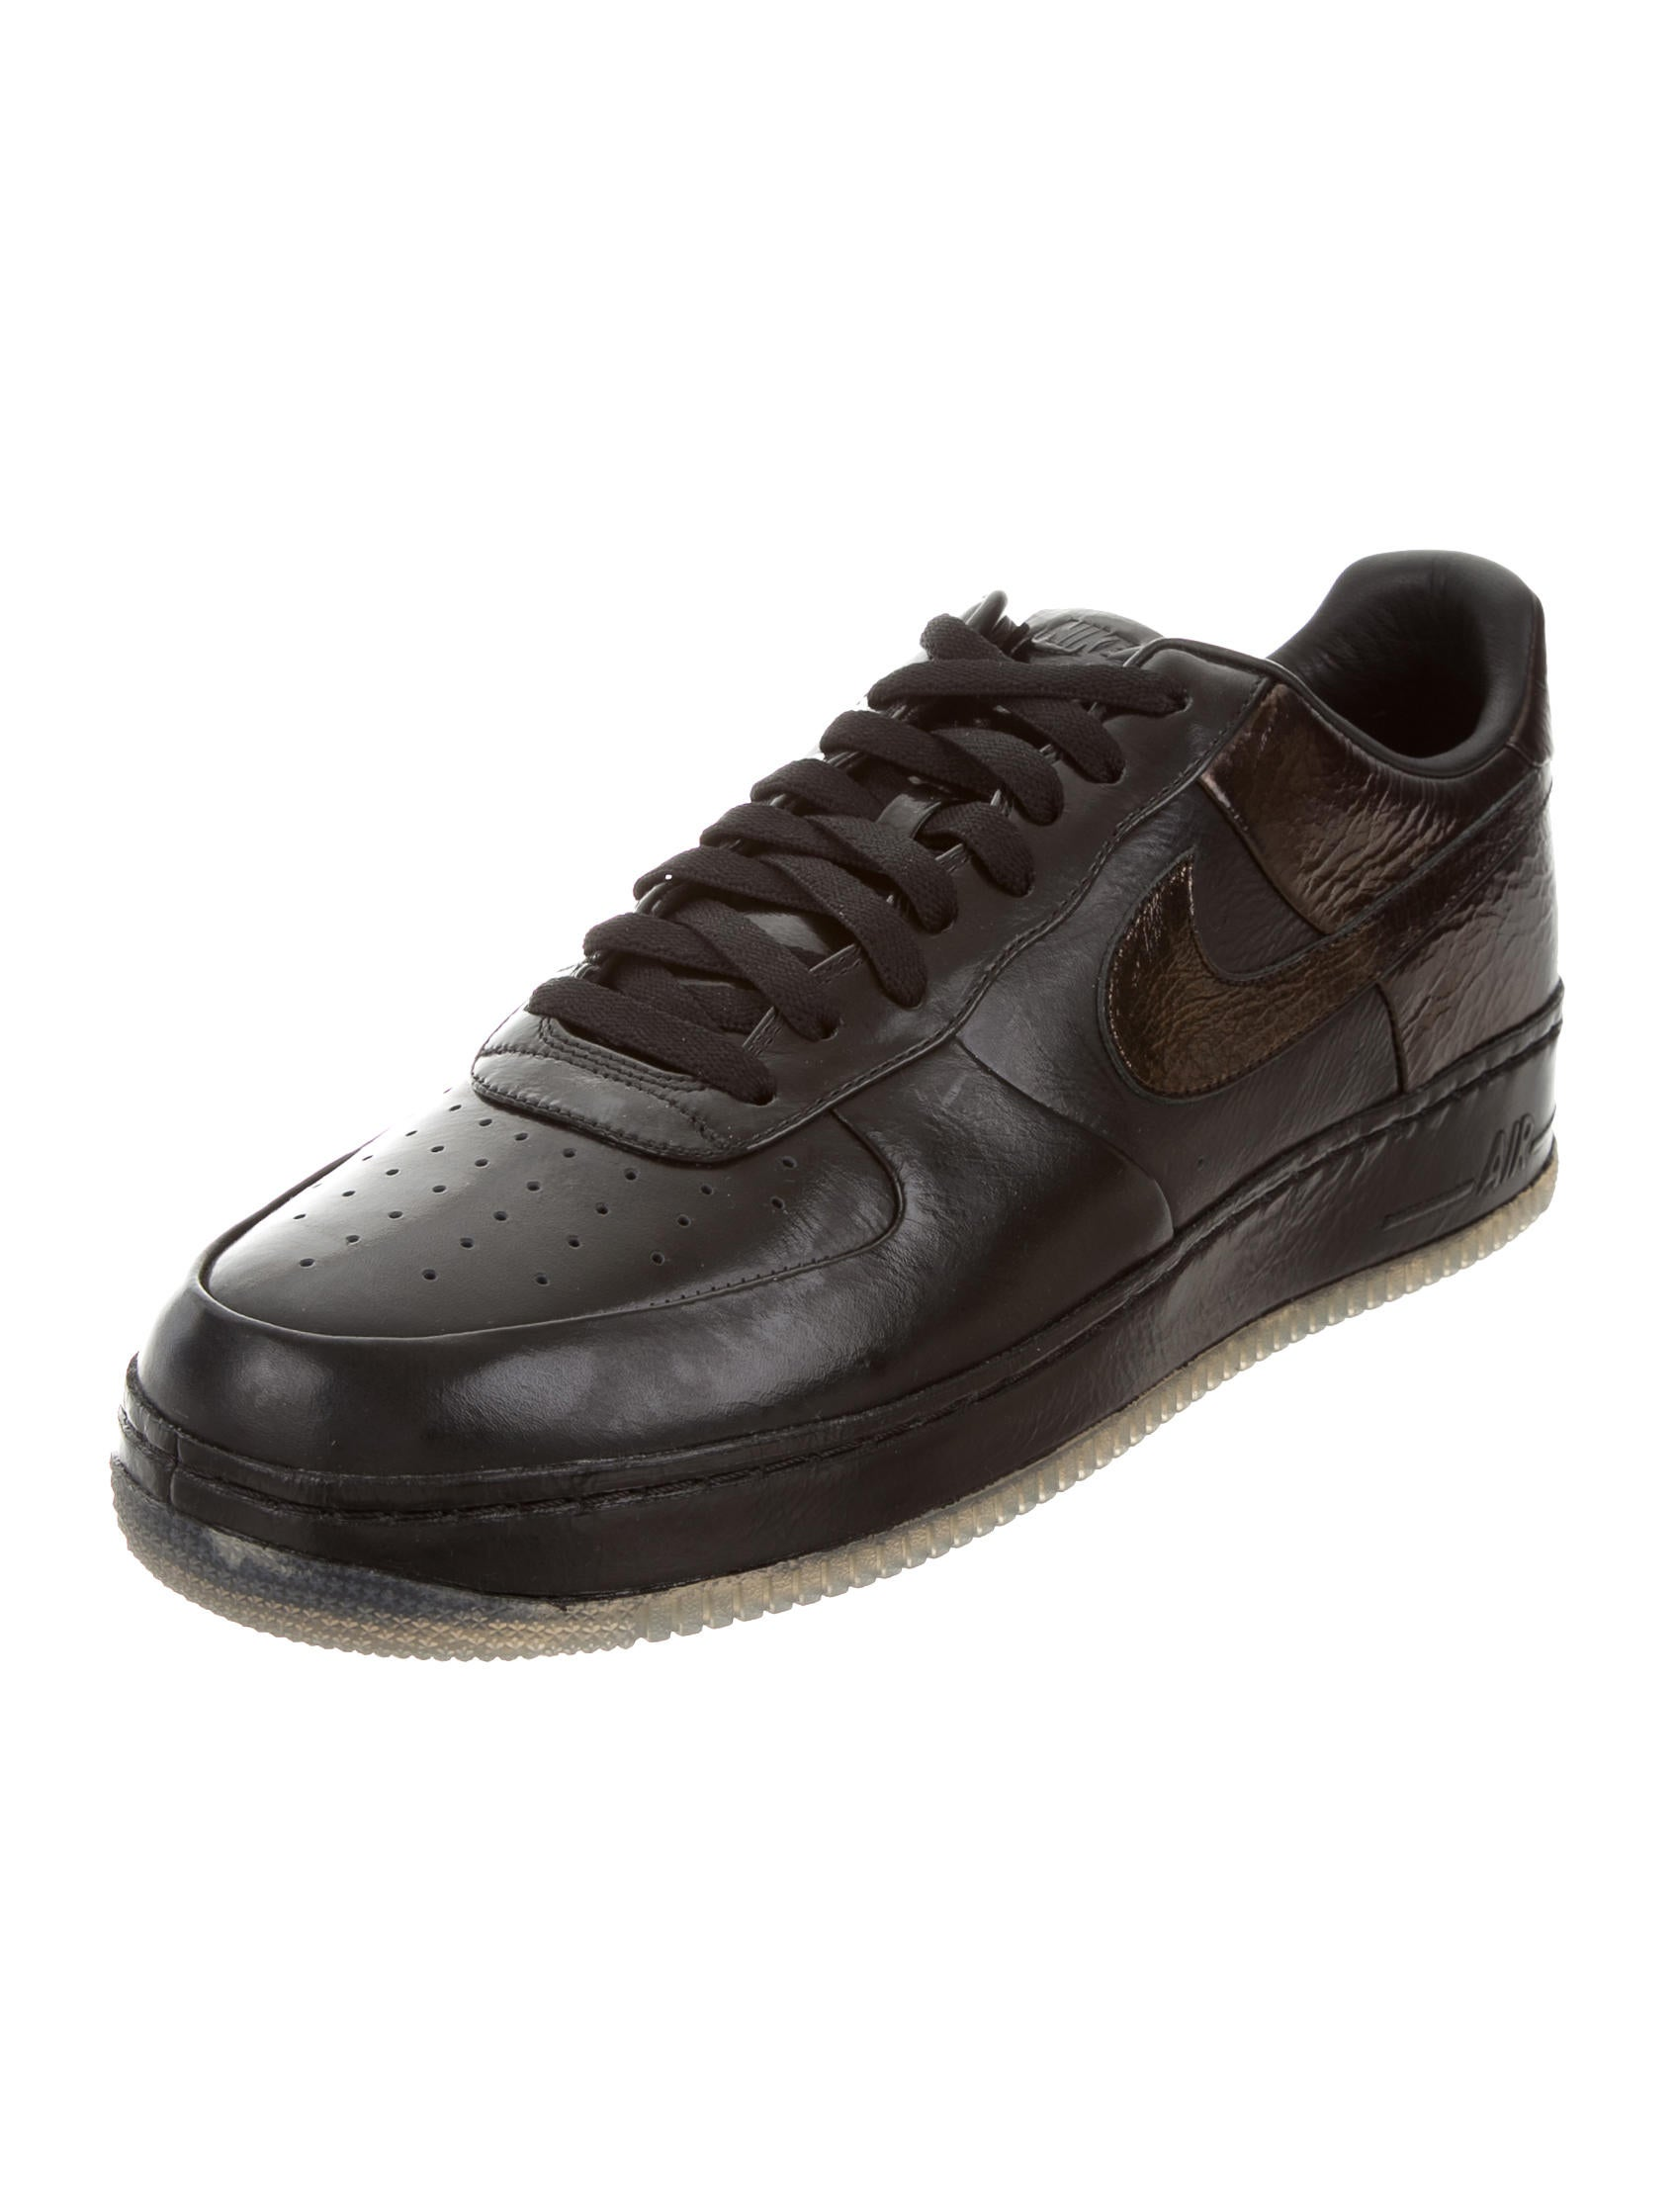 nike jay z all black everything air force 1 sneakers. Black Bedroom Furniture Sets. Home Design Ideas